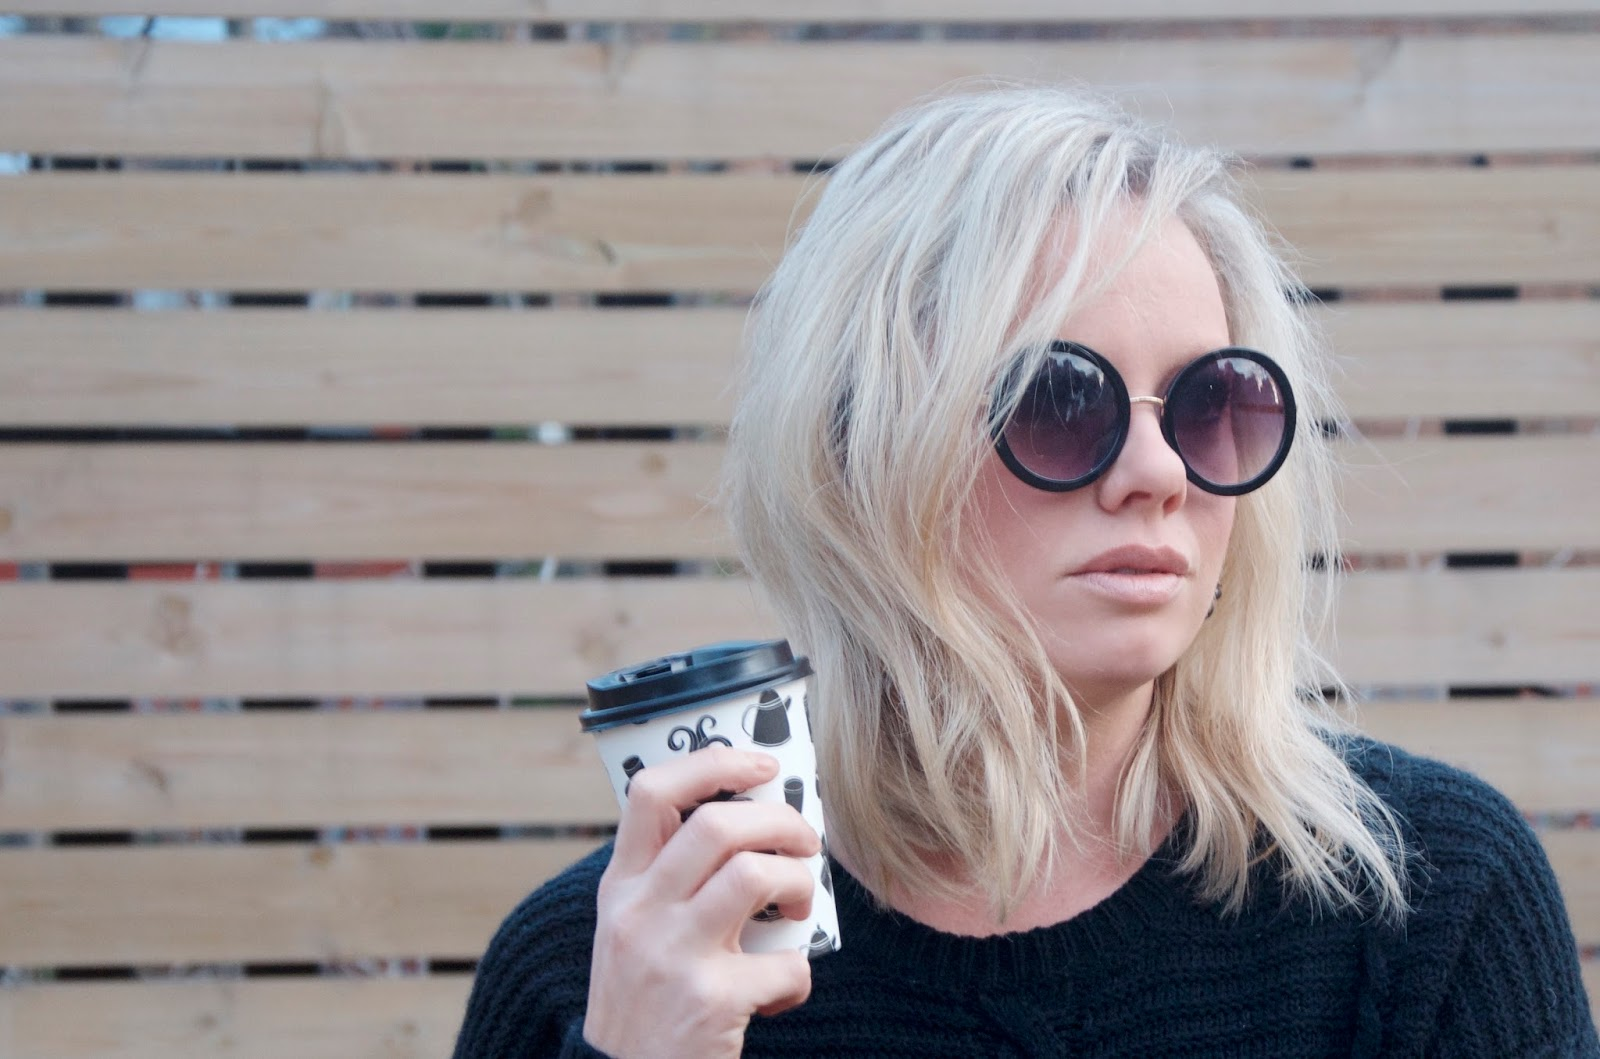 Black Sunglasses and Black & White Disposable Coffee Cup